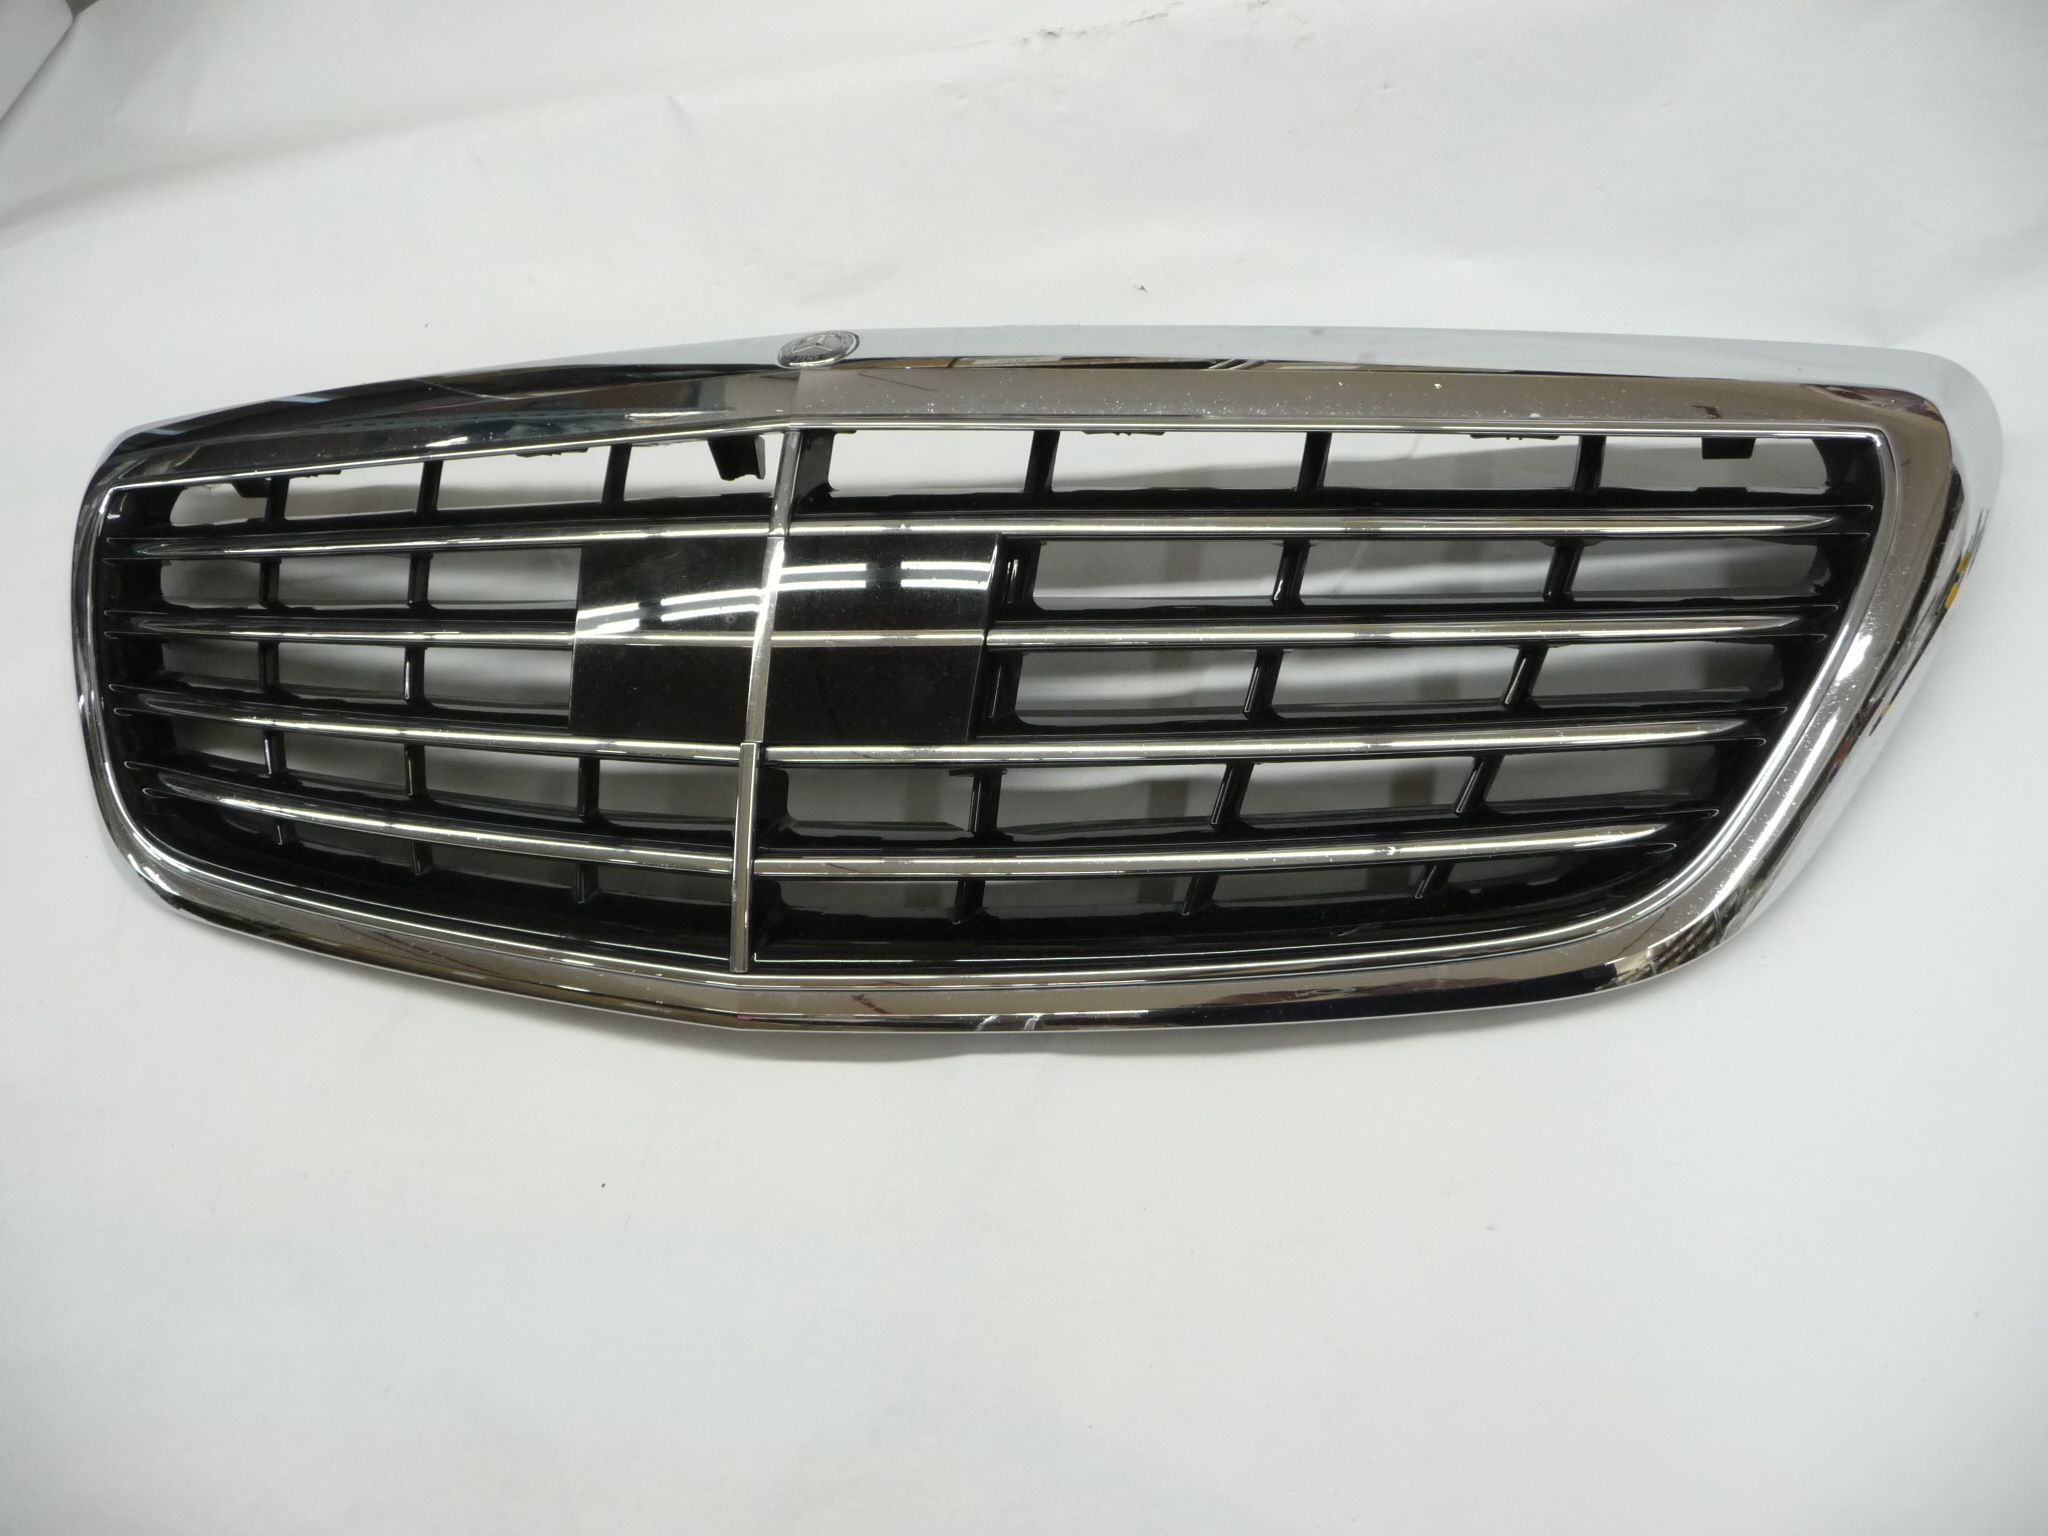 2014 2015 2016 2017 Mercedes Benz S550 W222 Front Grille w/Distronic Control option, w/o Surrounding Camera 2228800183 OEM OE